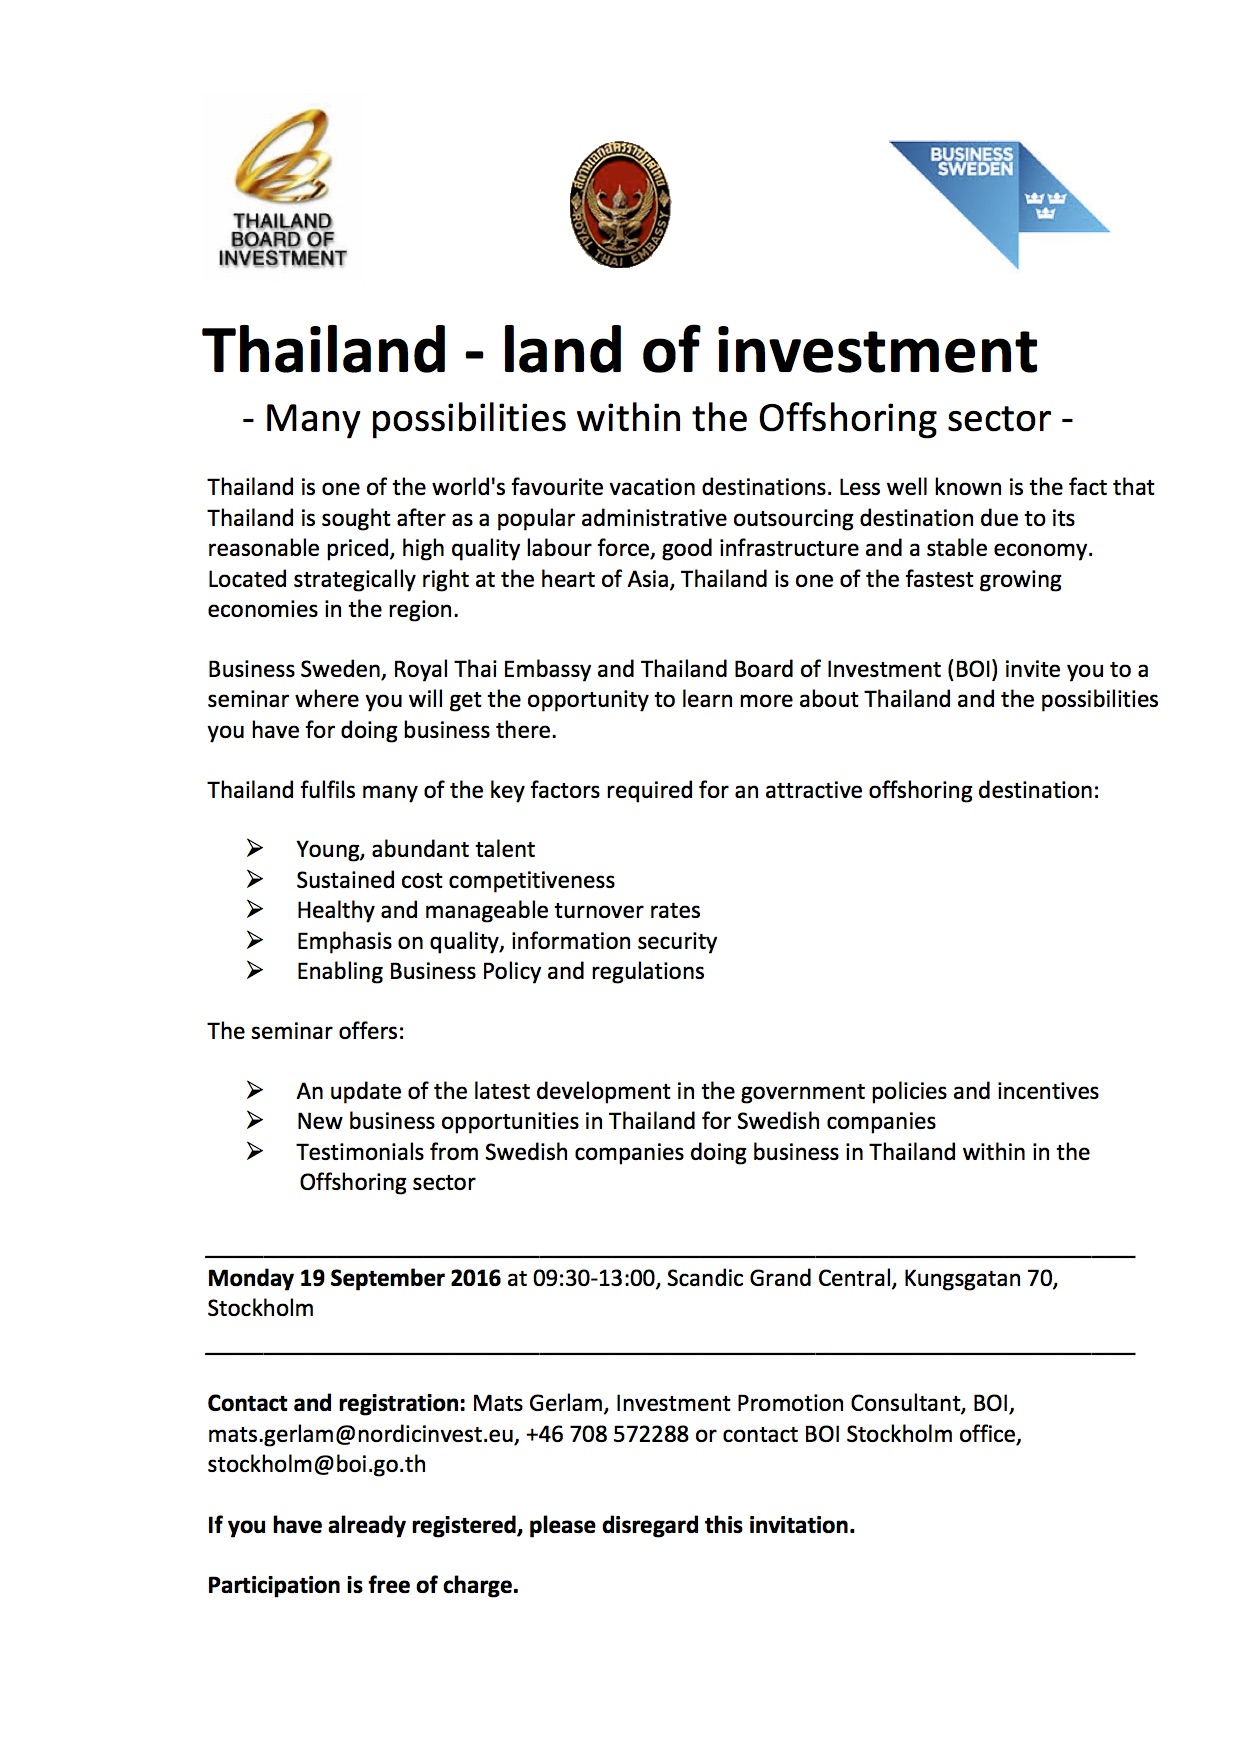 Invitation to Thailand – land of investment Seminar: Sep